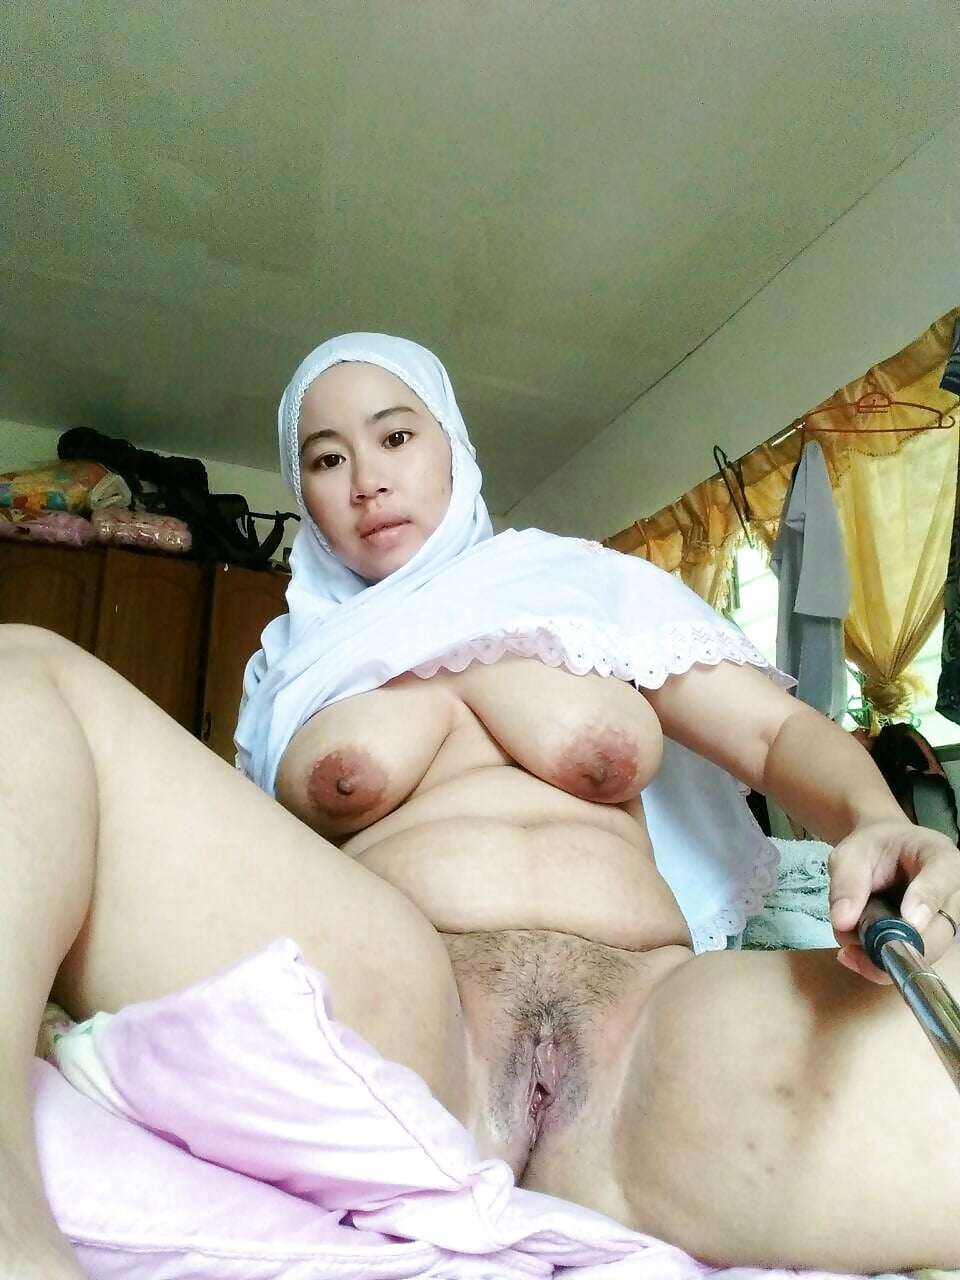 hijab-girl-nude-pix-shy-wife-seduced